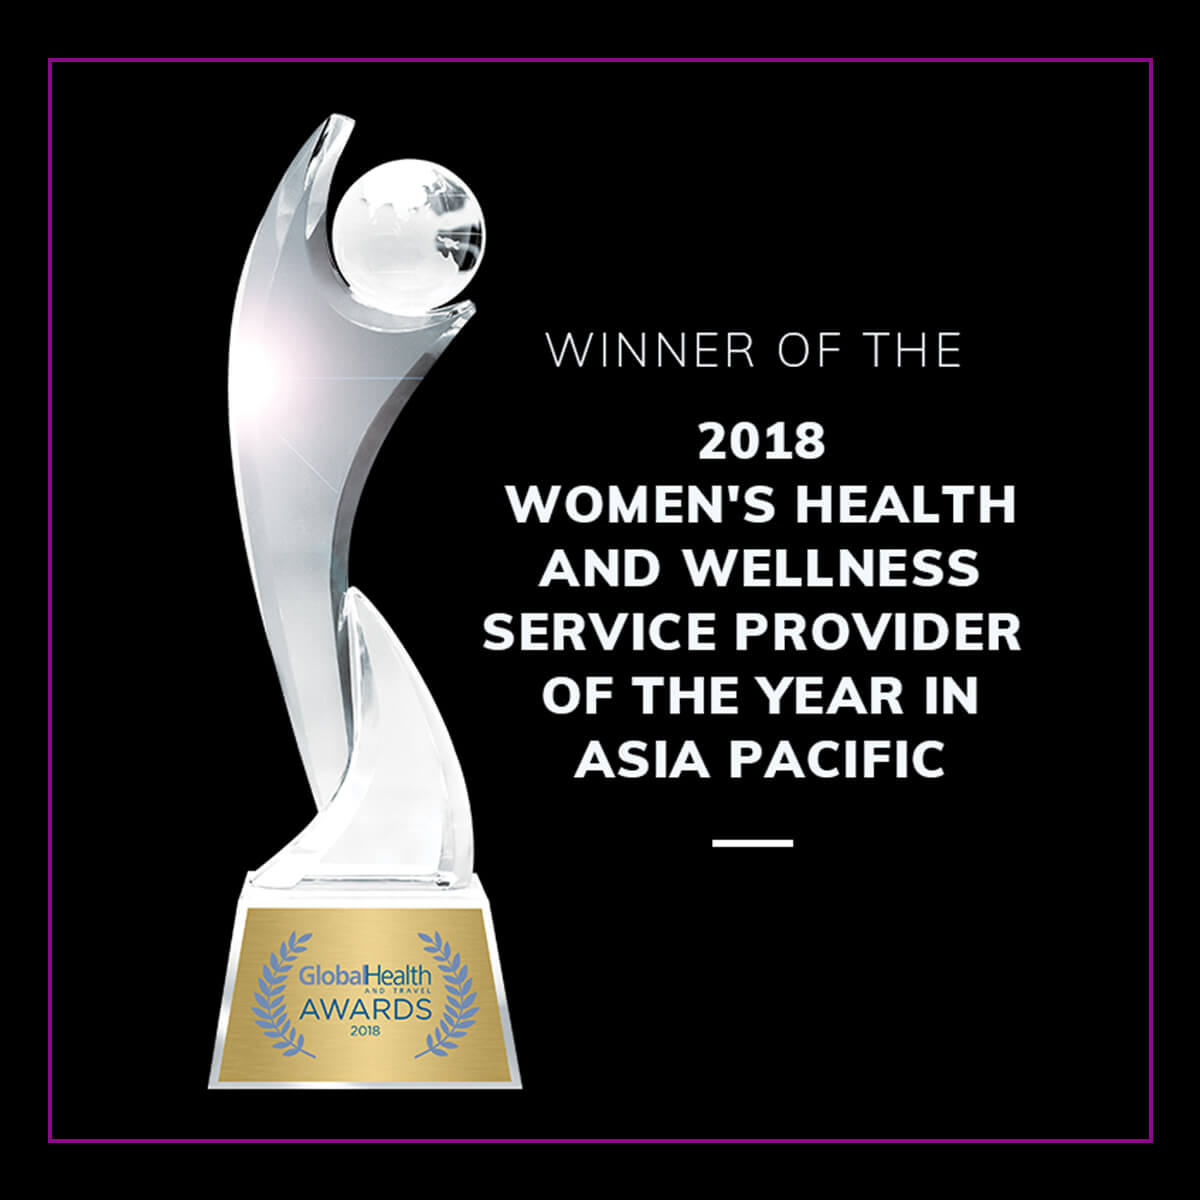 2018 Women's Health and wellness service award